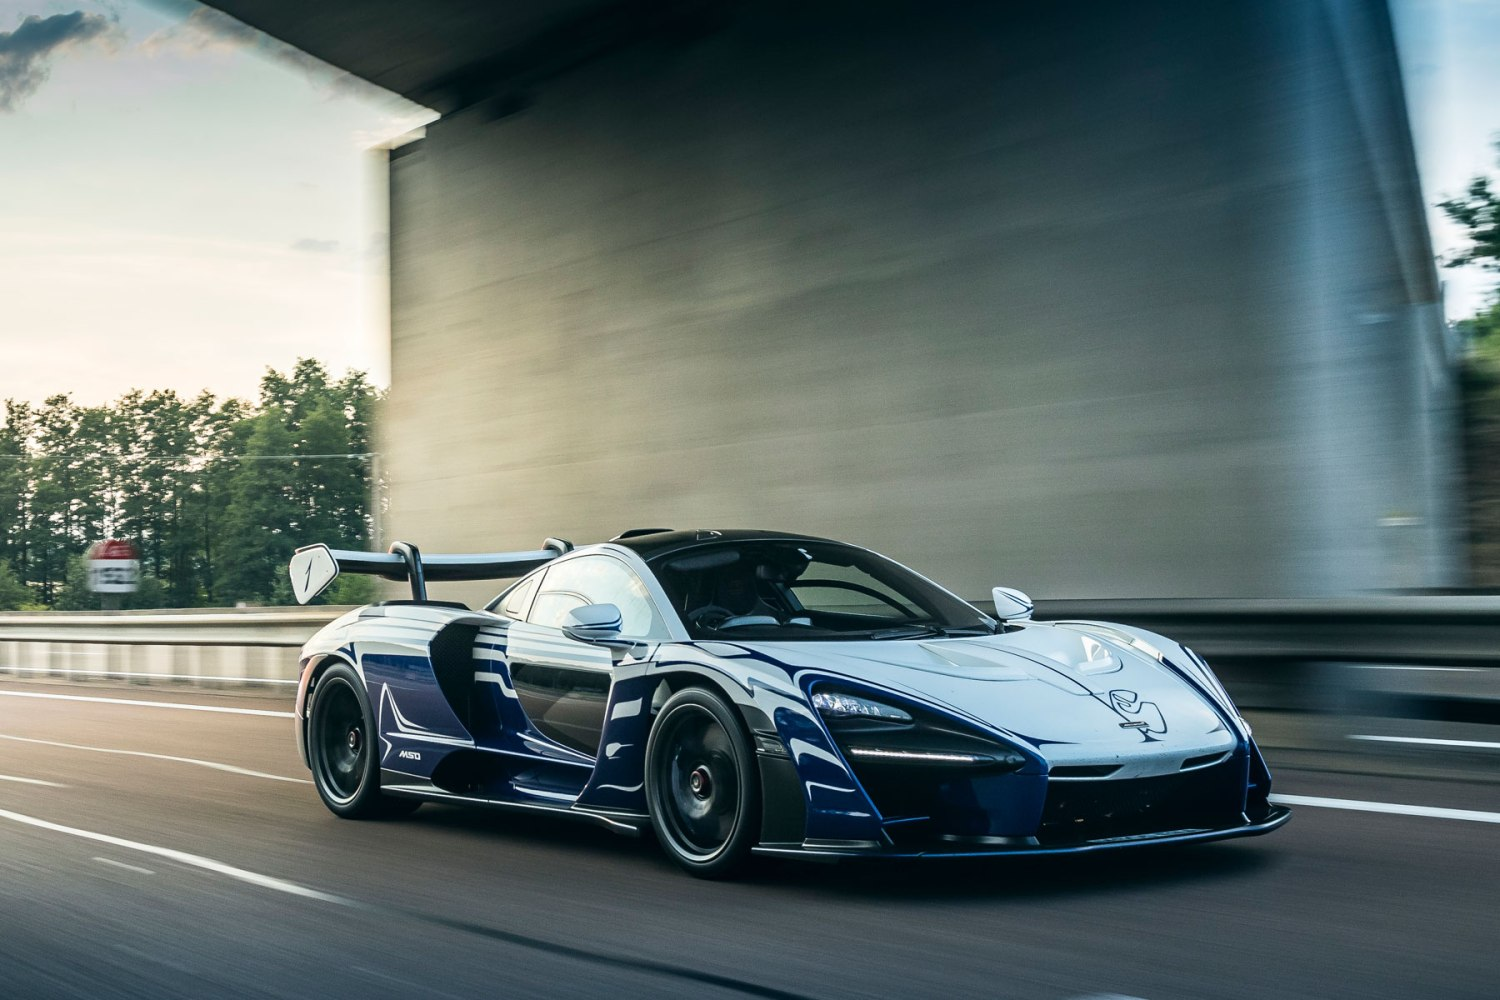 McLaren Senna – 2.8 seconds